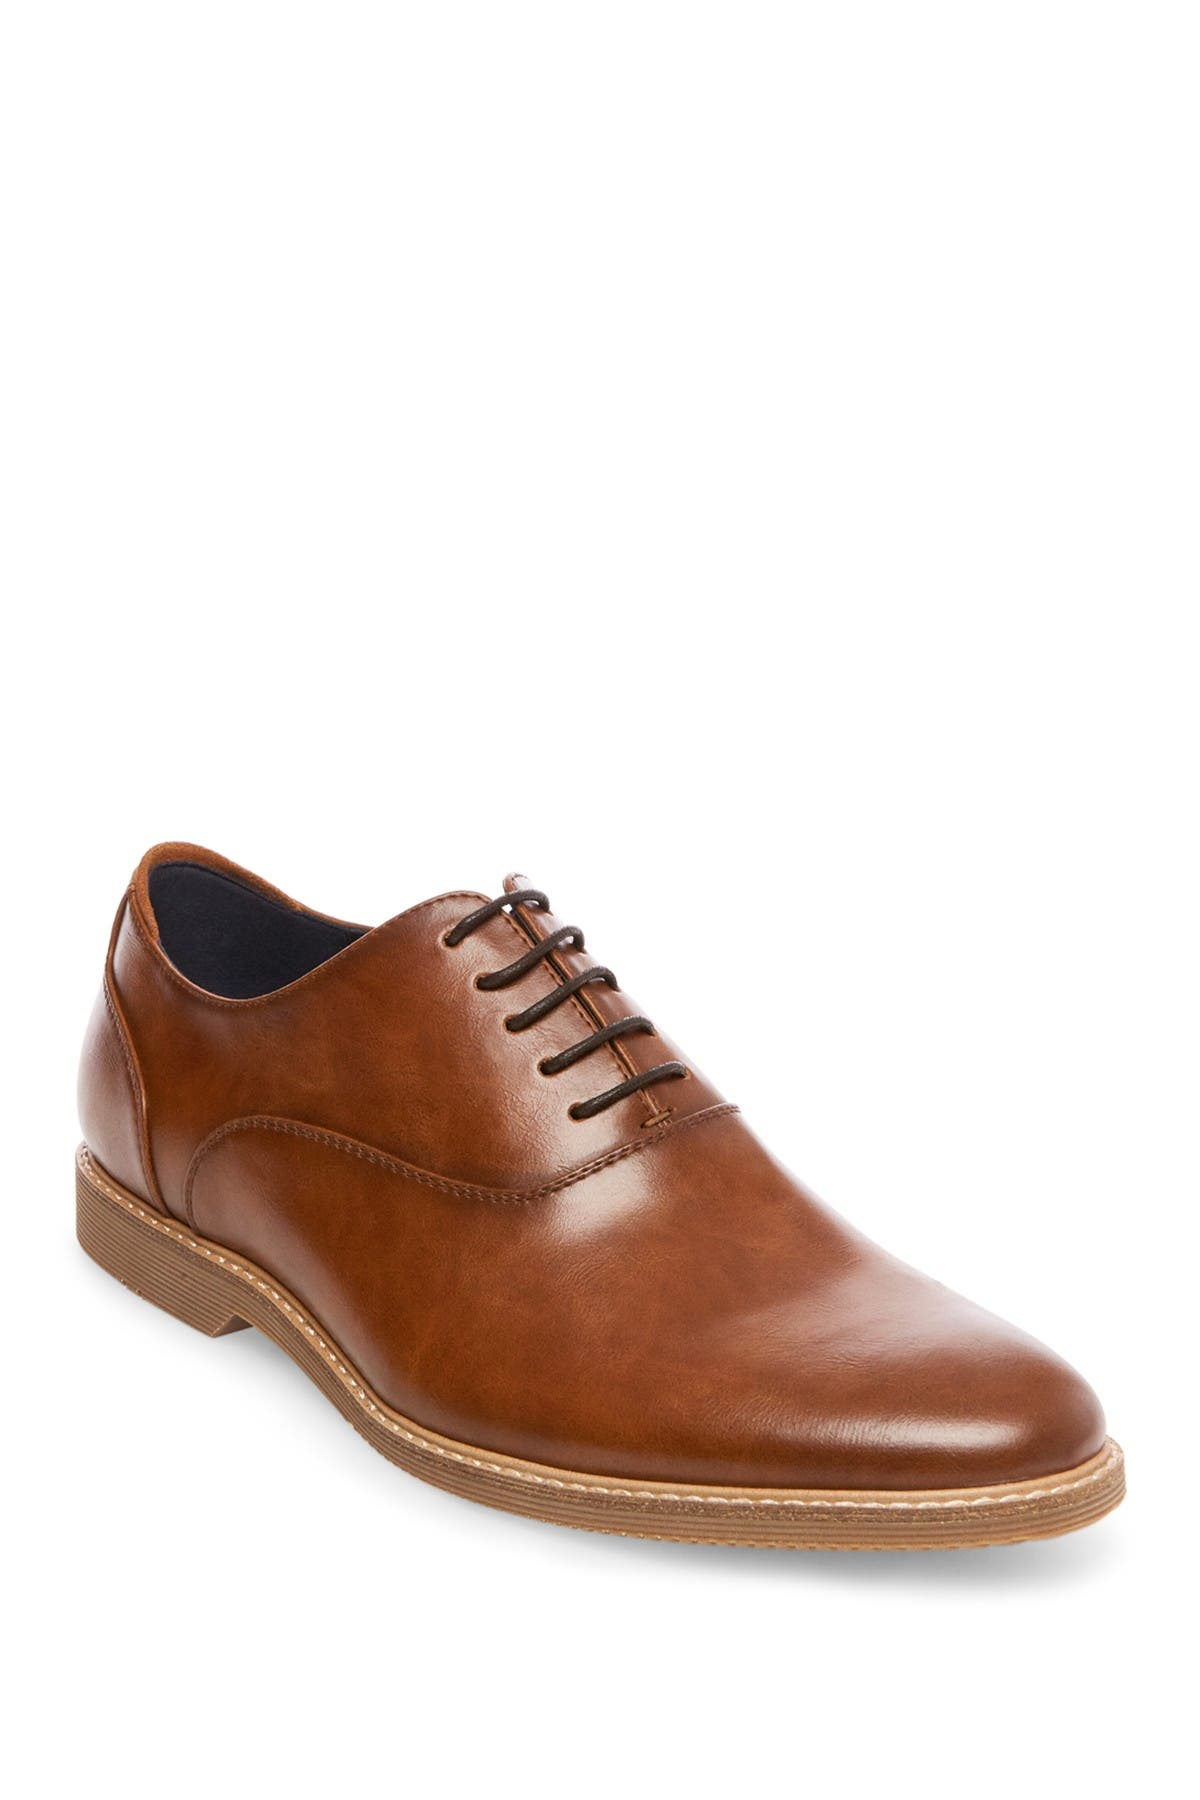 Image of Steve Madden Onan Oxford